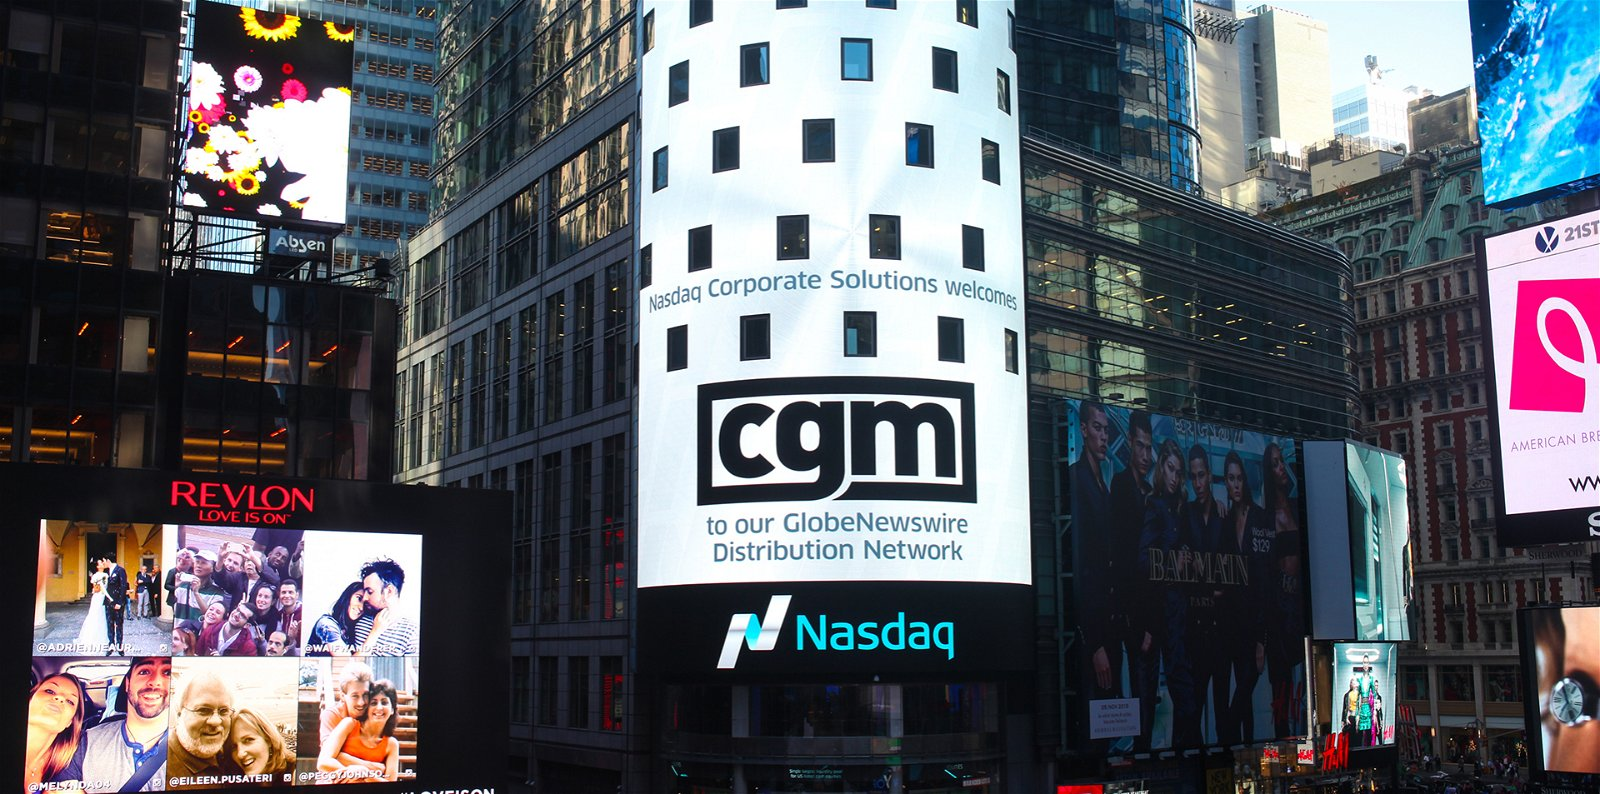 CGM Will Now Be Covering The World Of Business - 2015-11-06 09:04:38